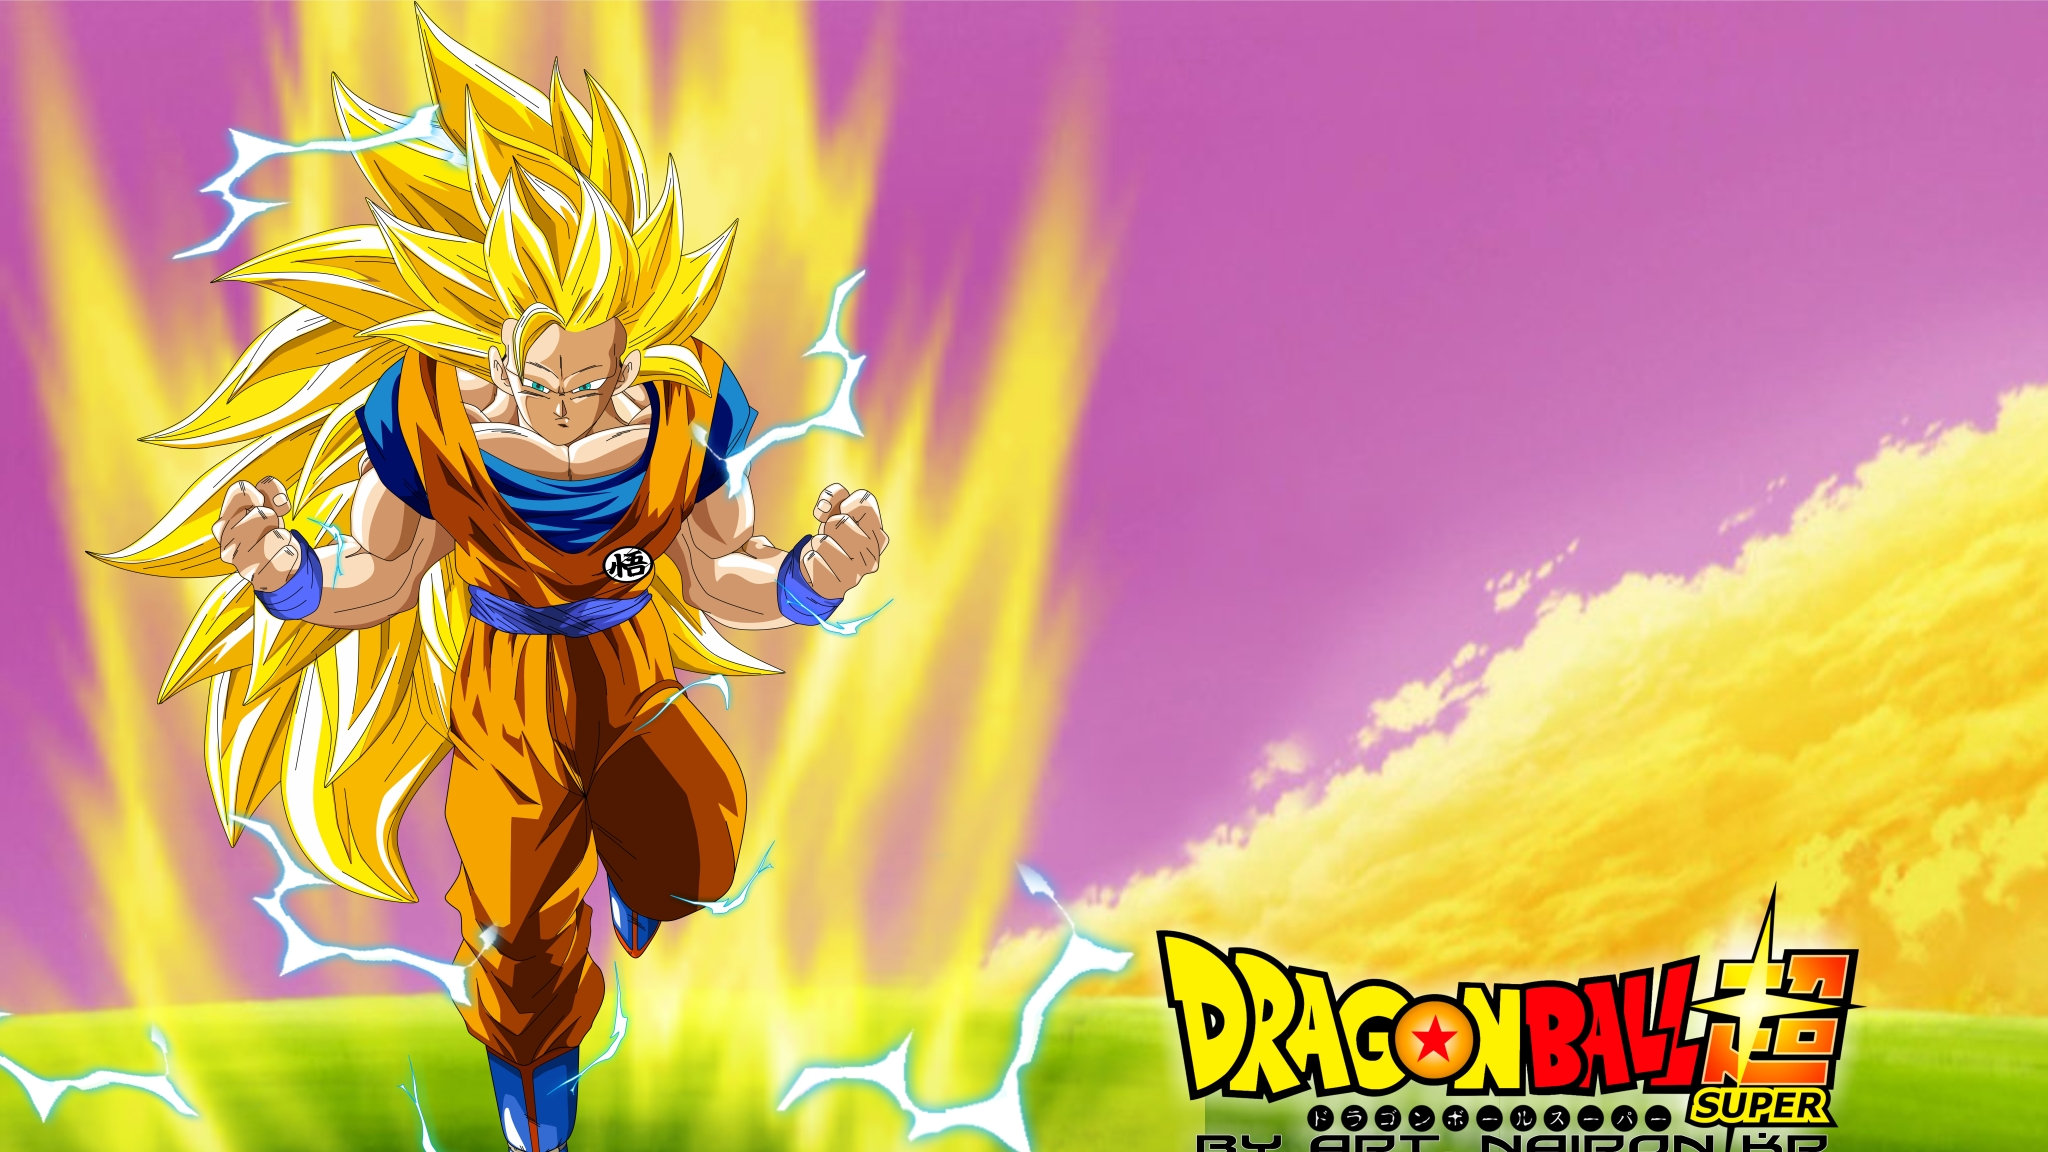 Goku, Dragon Ball Super, Super Saiyan 3, HD 10K Wallpaper